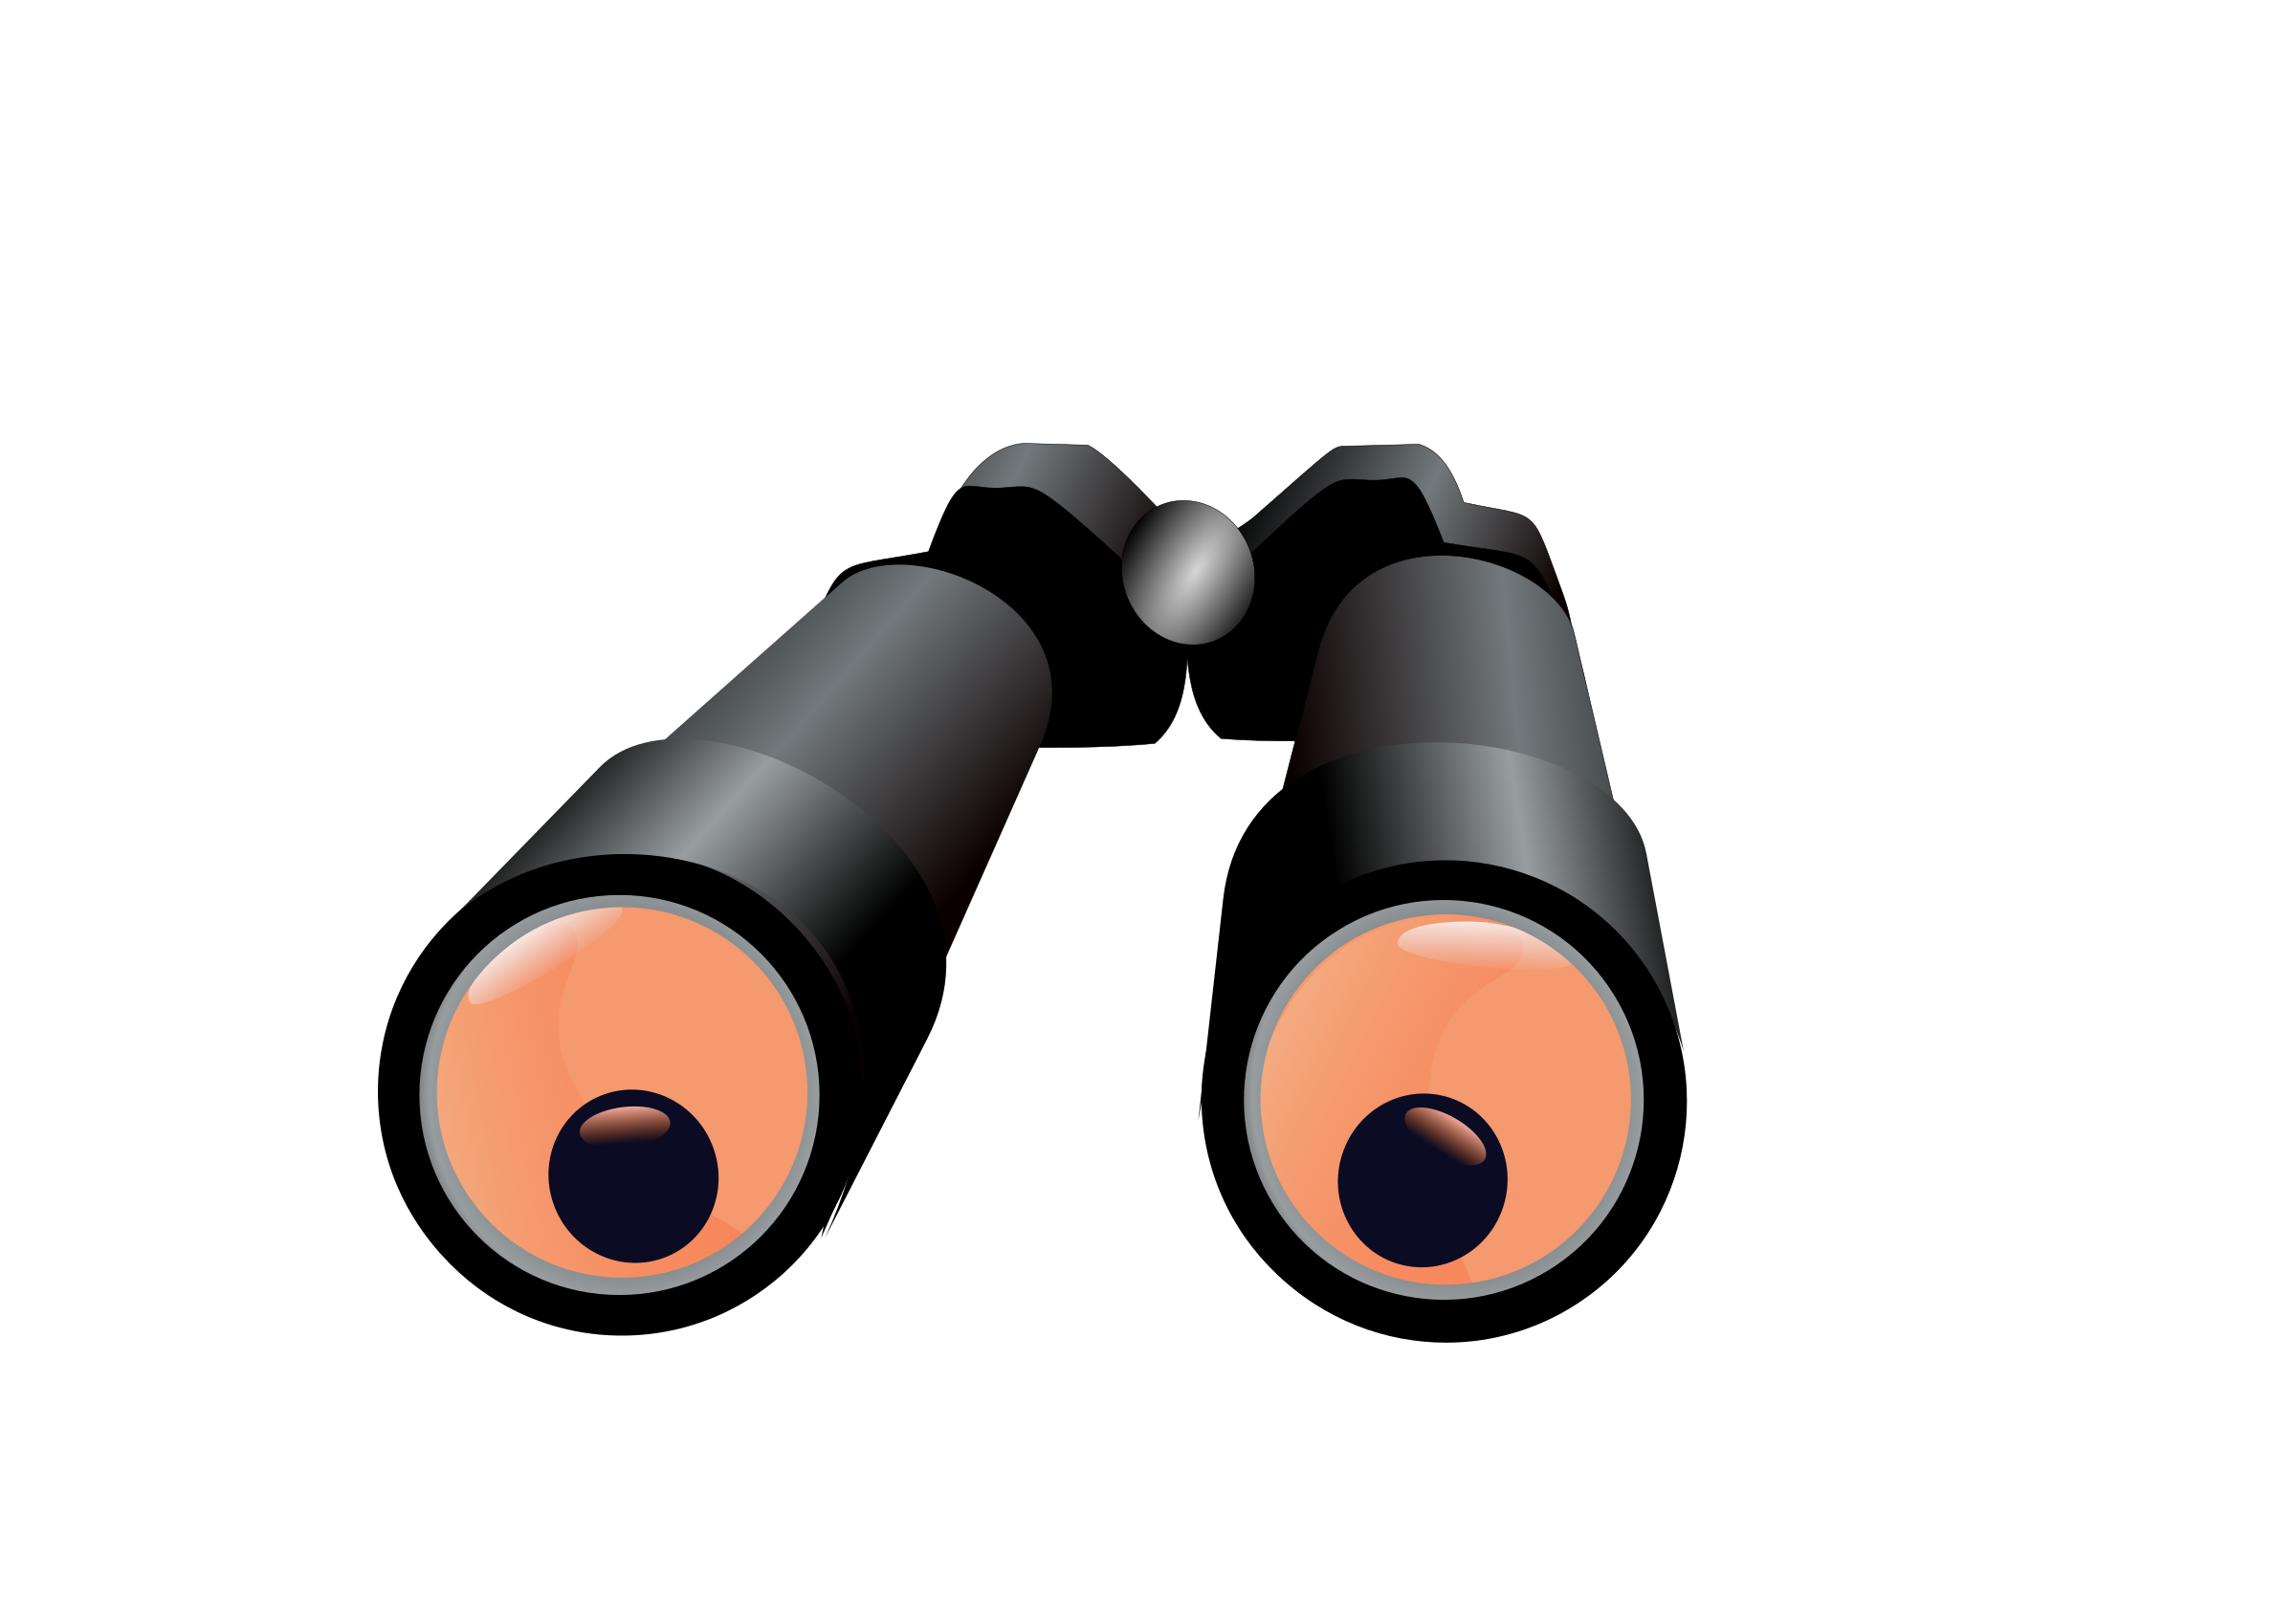 Binoculars with spying eyes by Juhele